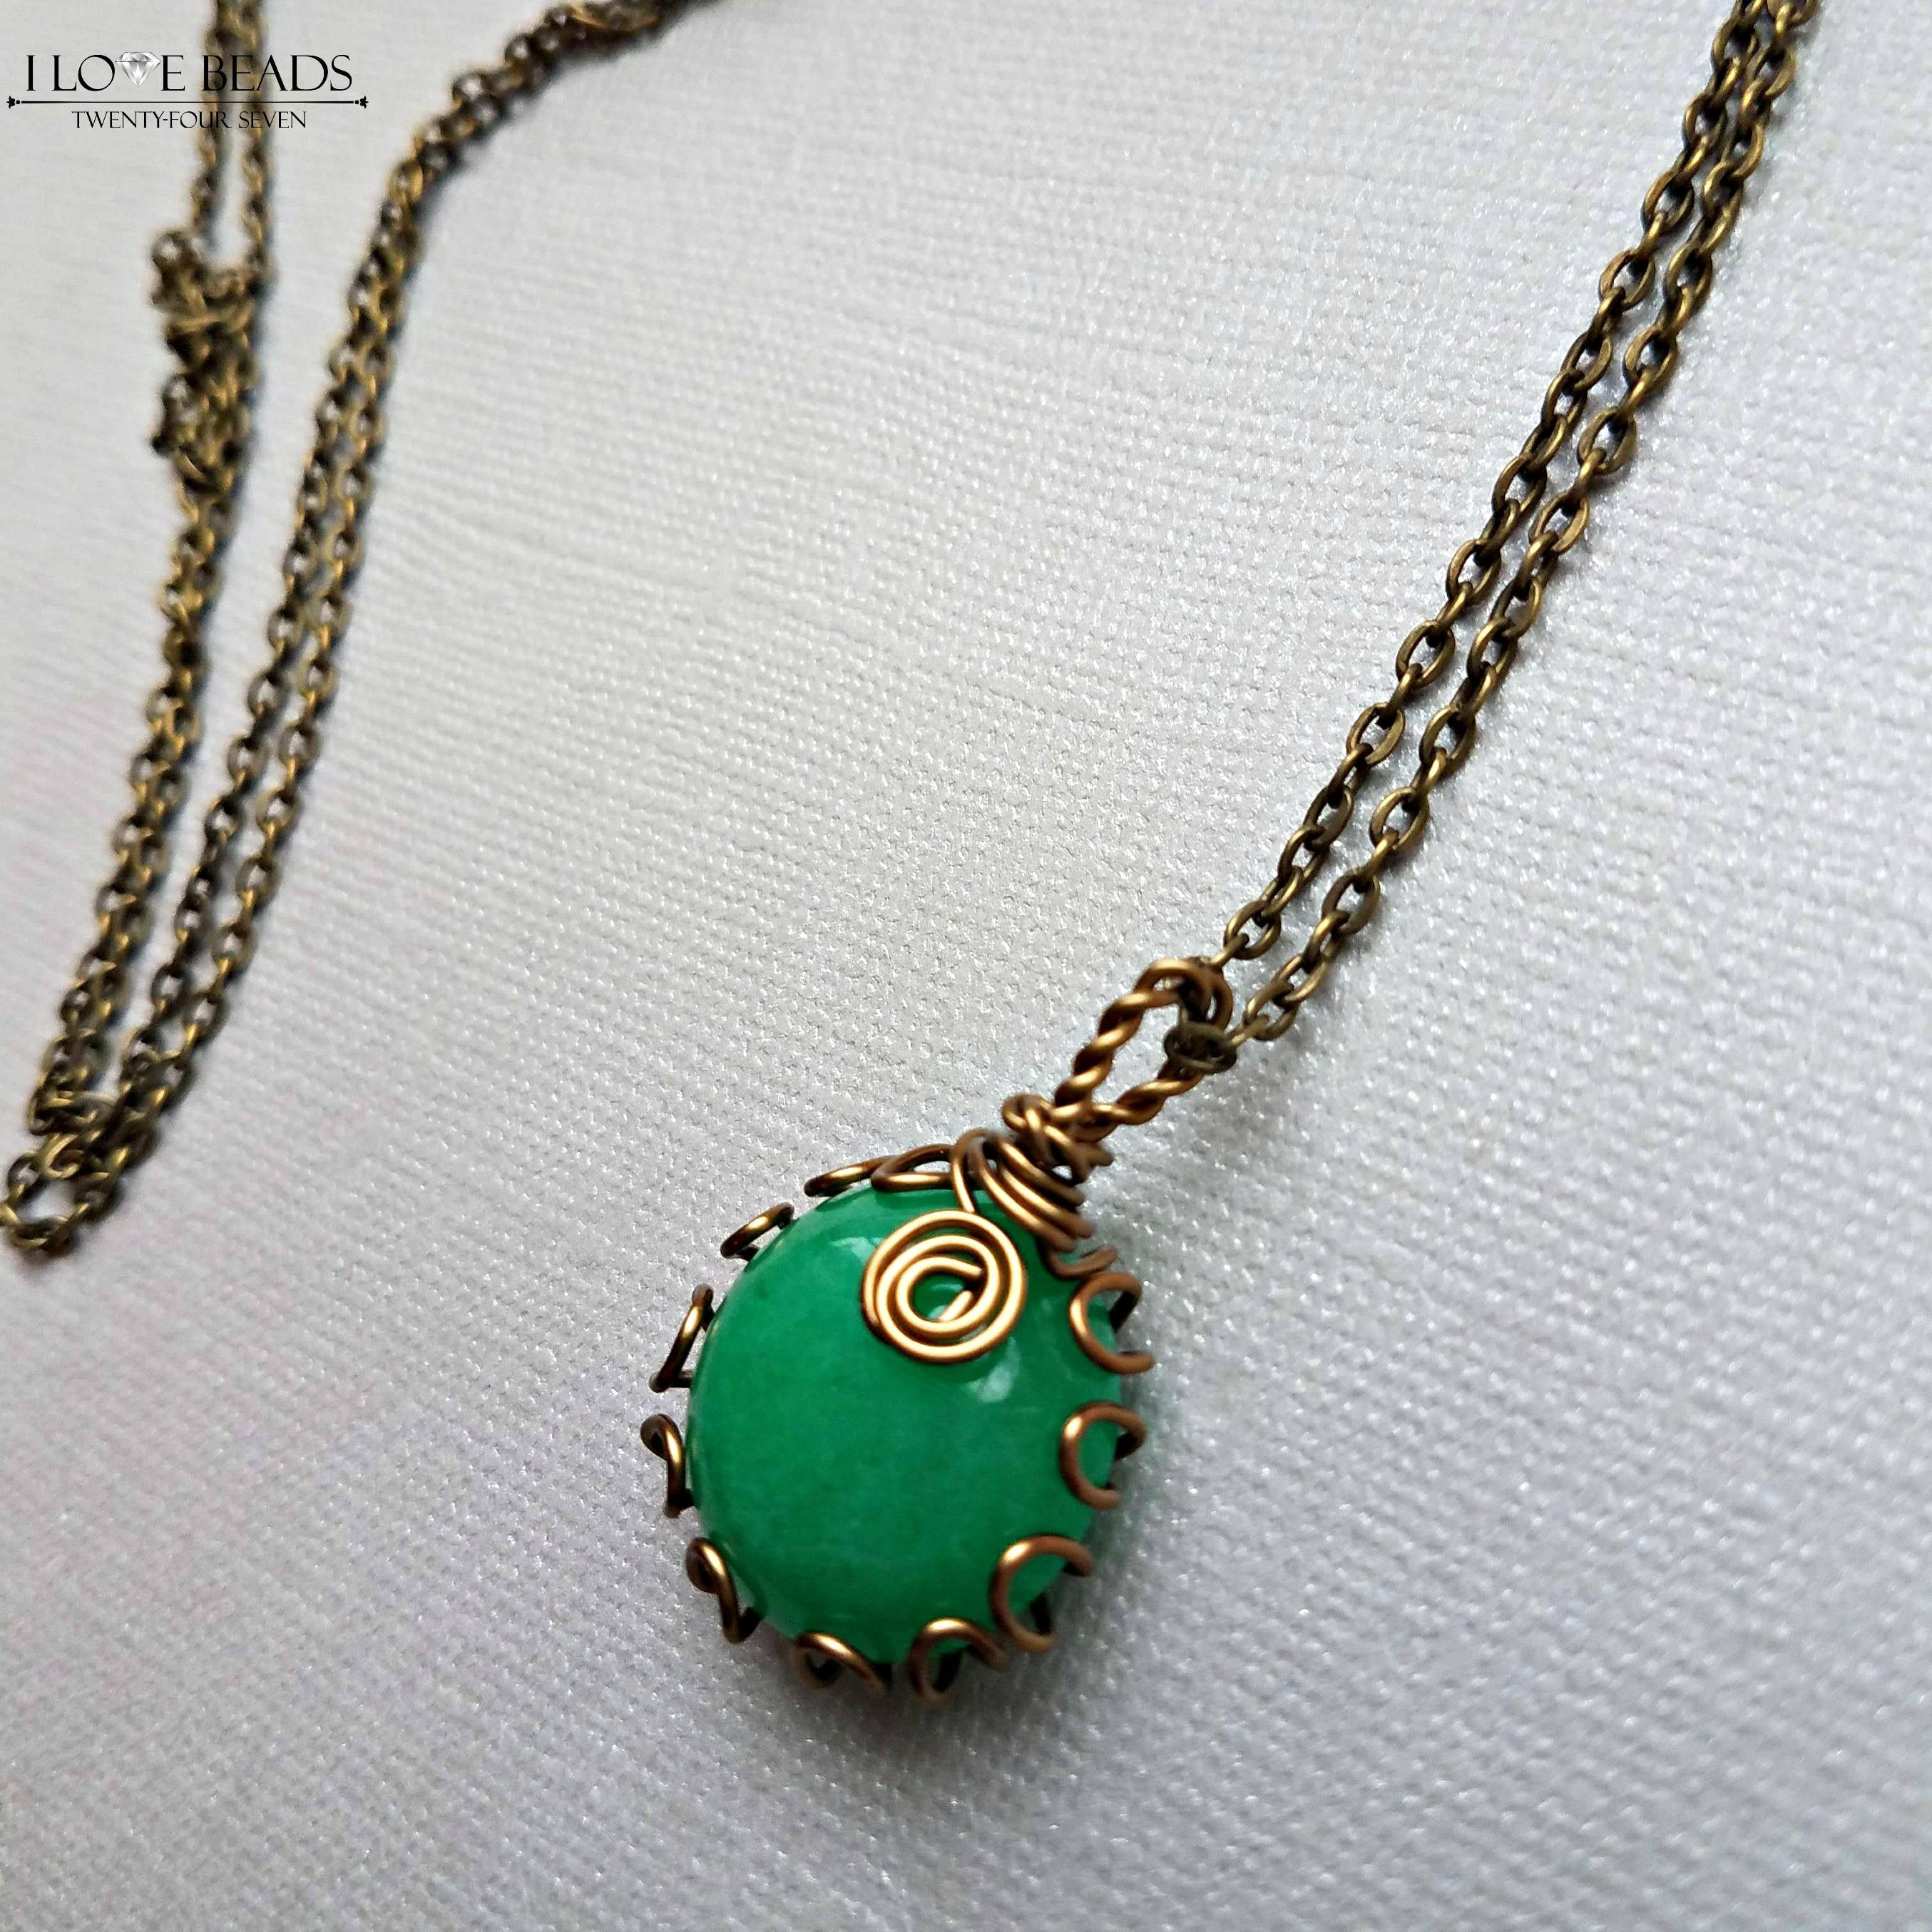 necklaces pendant addictedto en chalcedony online venta de joyas water drop